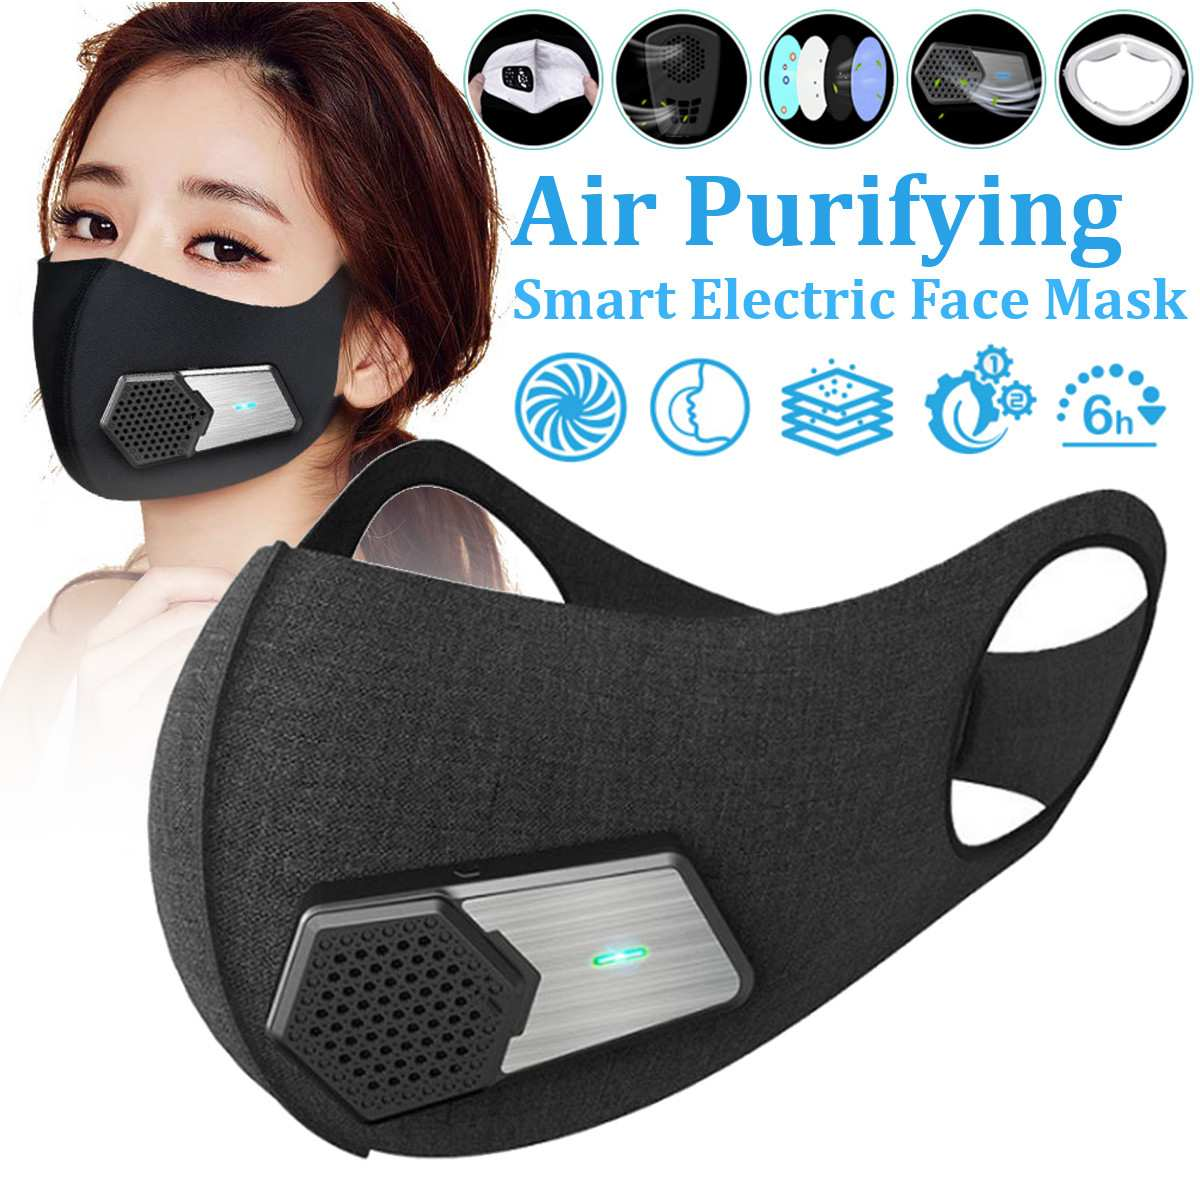 Respiratory Dust Mask Electric Air Purifying Face Masks Anti-fog Haze PM2.5 Pollen Breathable Valve Mask Anti Dust Pollution